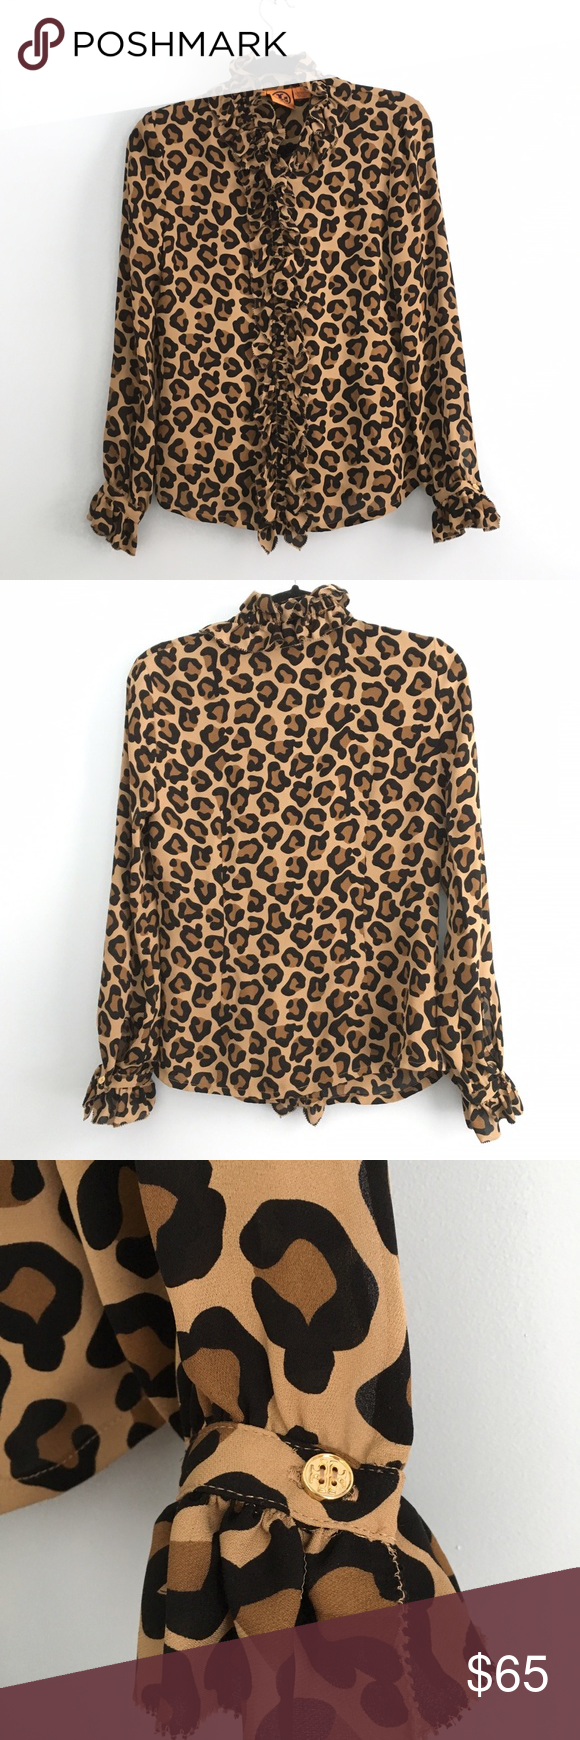 Tory Burch Print Blouse Designer, Tory Burch, leopard print silk blouse with gold Tory Burch logo buttons on the cuffs, collar and hidden beneath the center front ruffles in the middle. Never worn. Tory Burch Tops Button Down Shirts